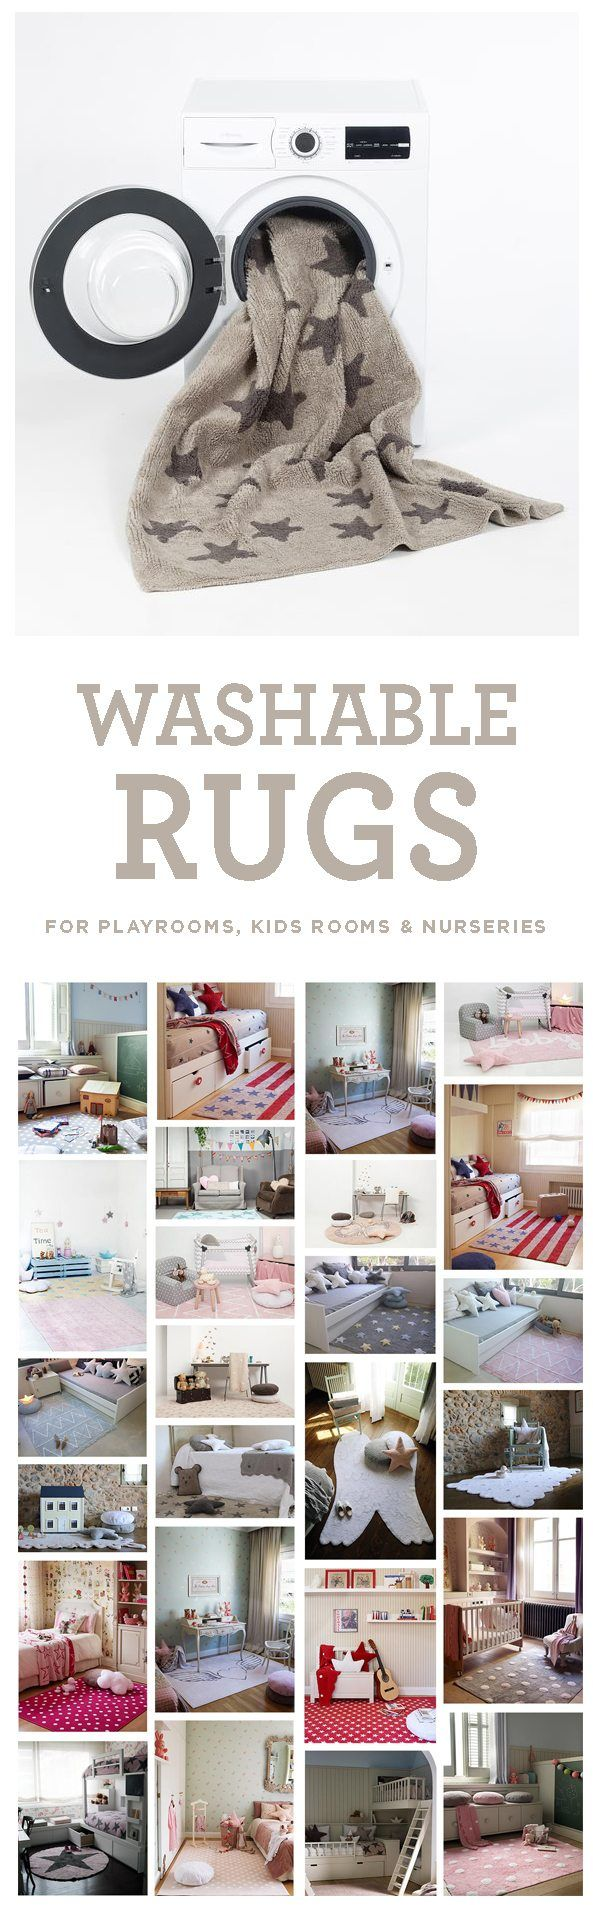 Washable rugs by Lorena Canals can be used in nurseries, playrooms or bedrooms. Just toss them in the washing machine and you're all set!